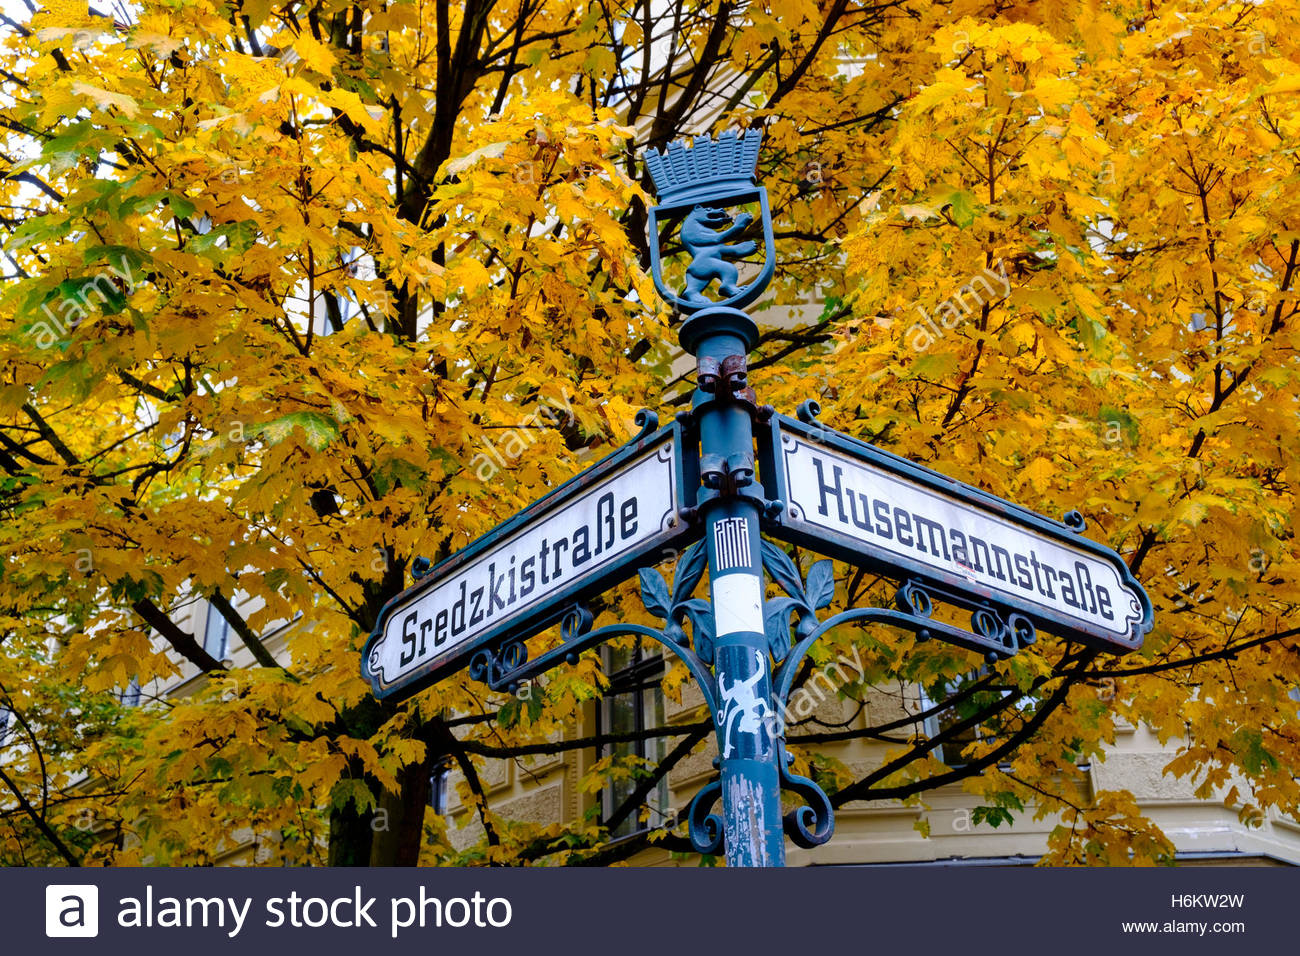 Ornate old street sign at Husemannstrasse in bohemian Prenzlauer Berg during Autumn in Berlin Germany - Stock Image